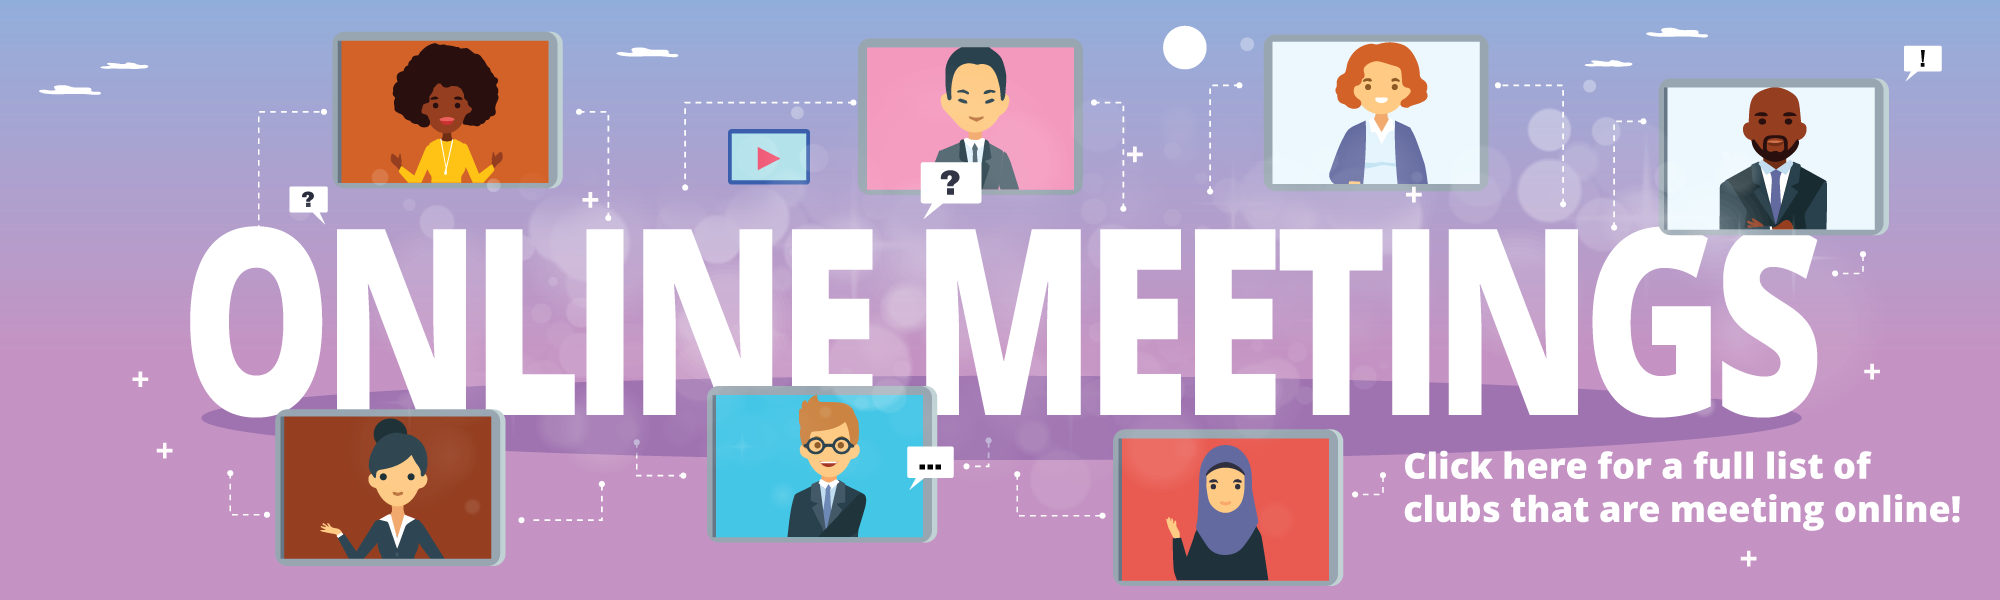 "Images of people on a screen surrounding the words ""Online Meetings"""